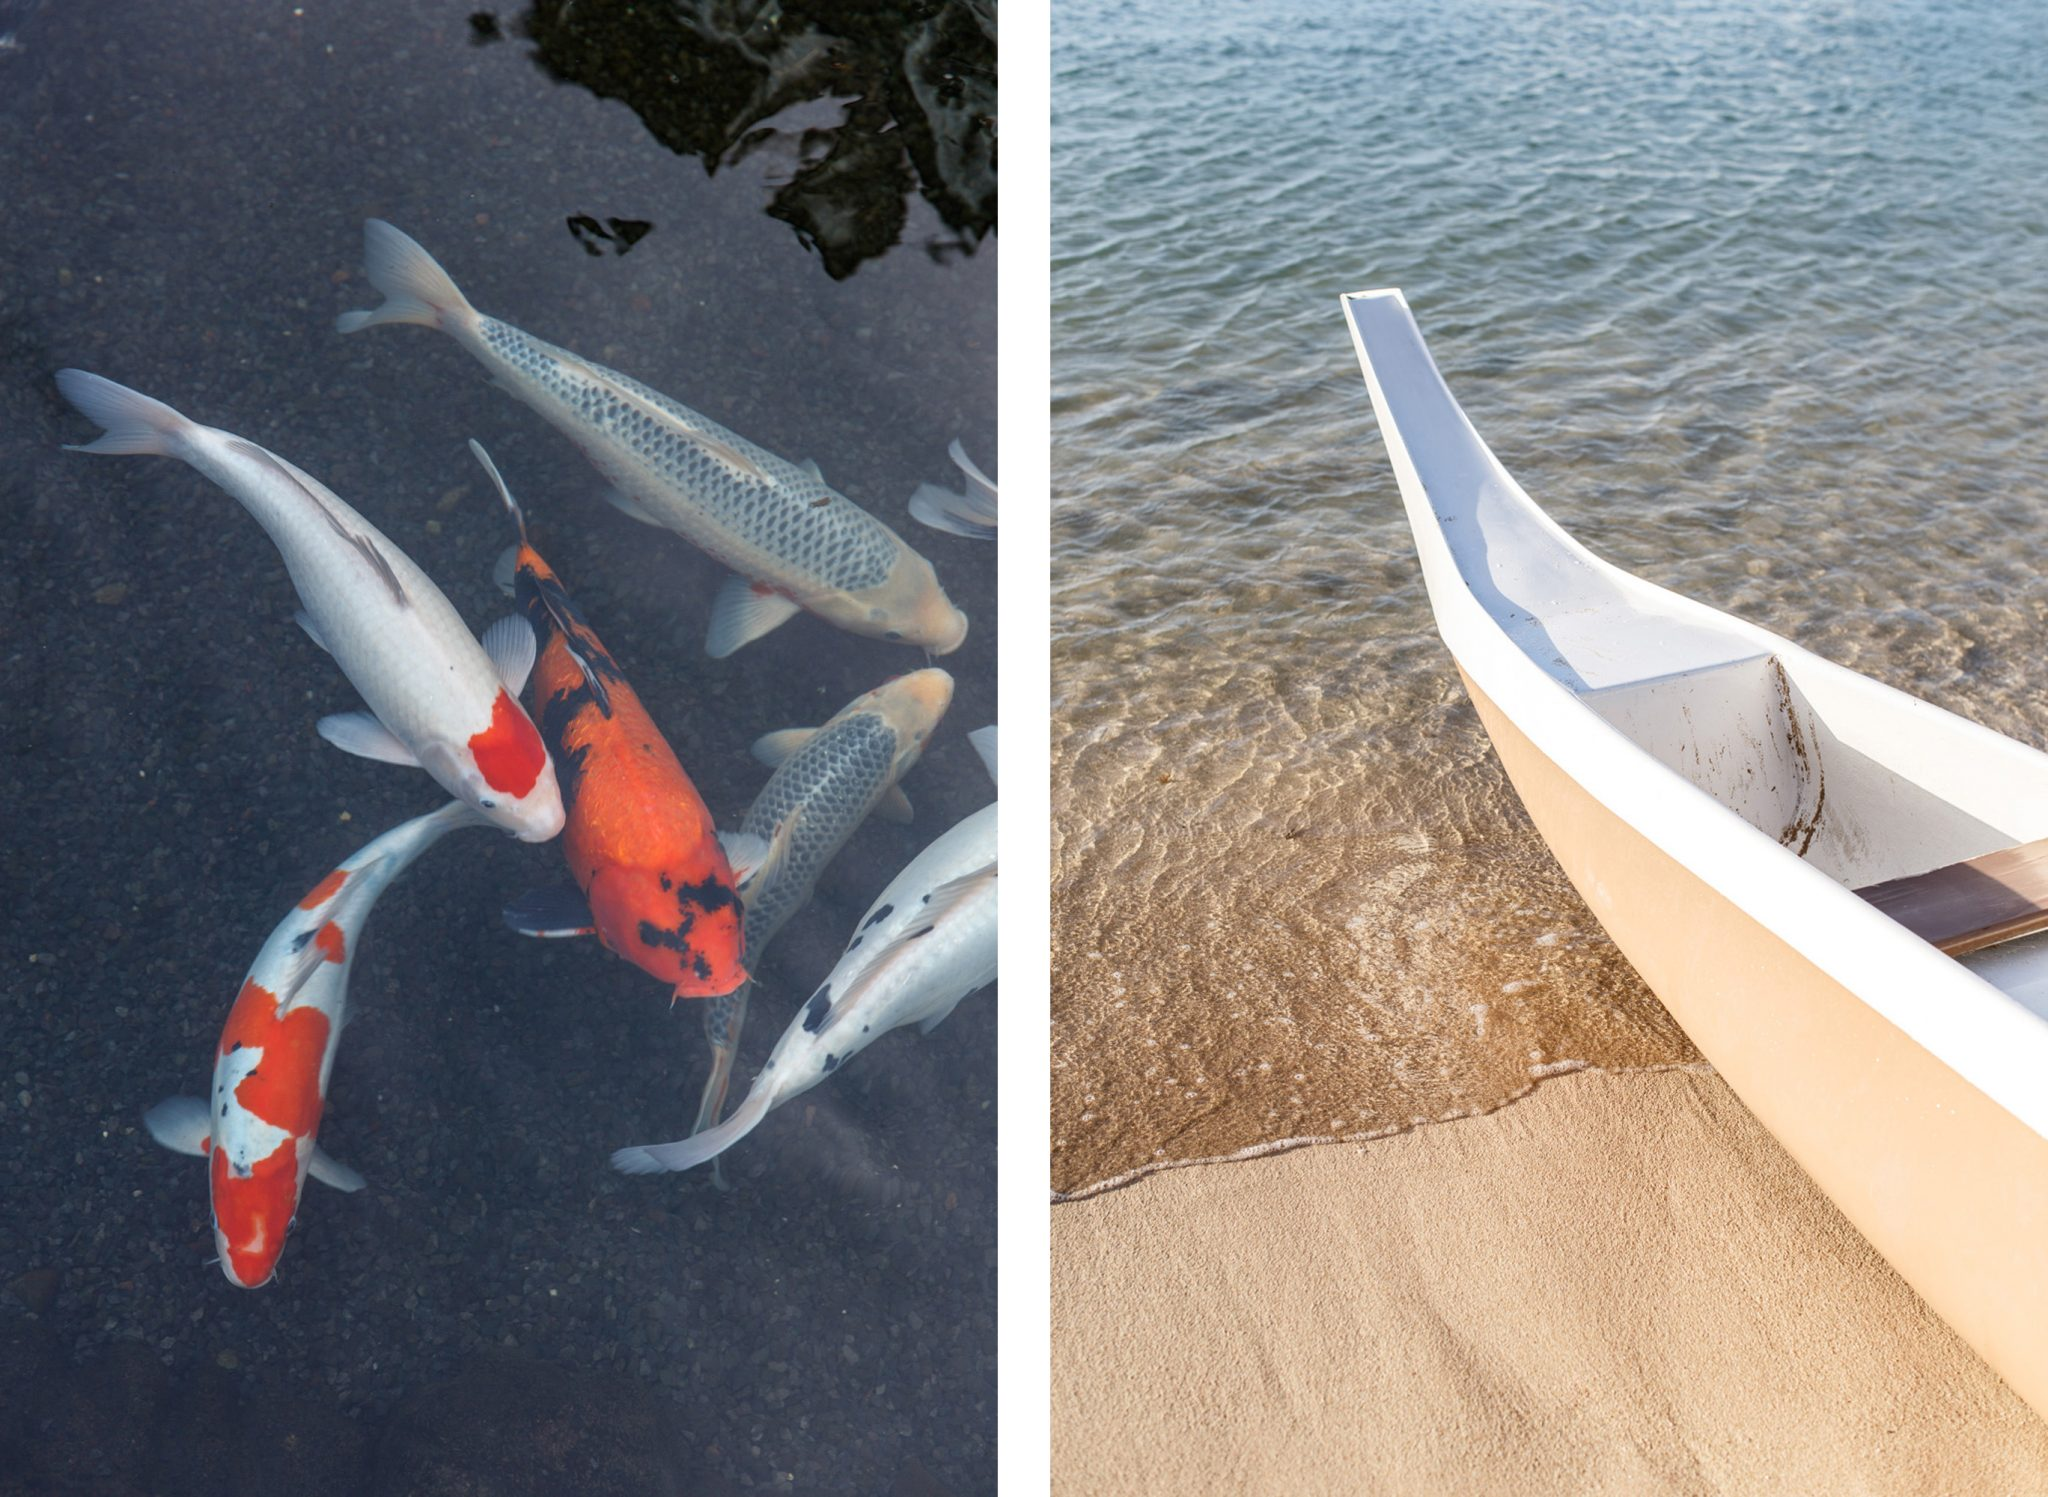 Oahu koi fish, white gondola comparison